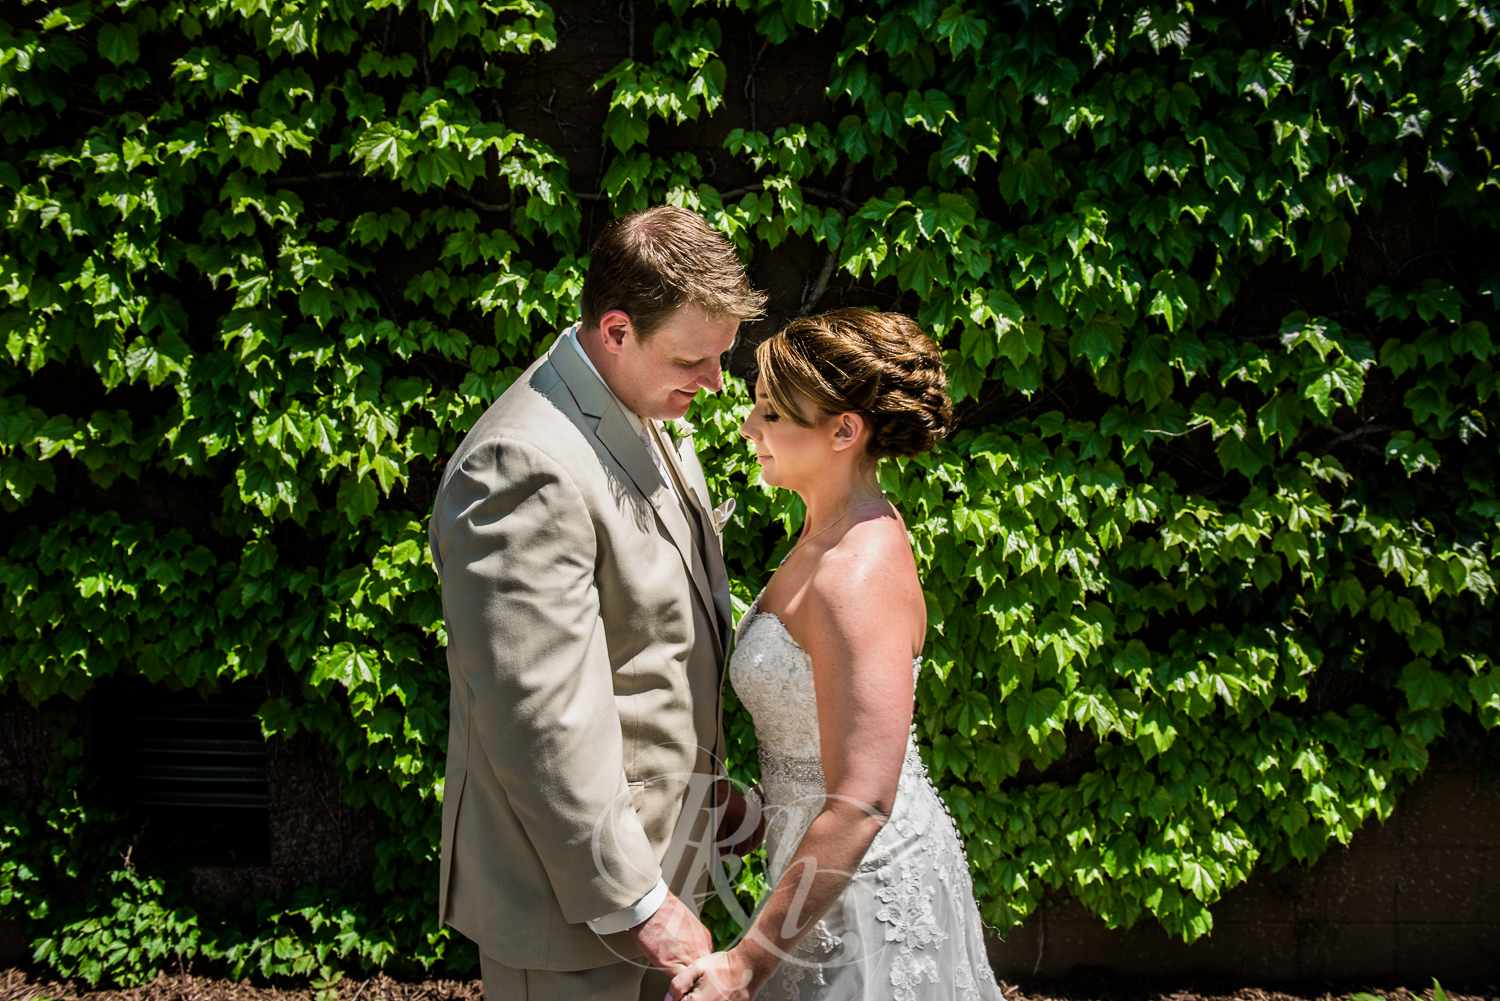 Blog - Whitney & Brent - Minnesota Wedding Photographer - RKH Images - Blog 3-3.jpg